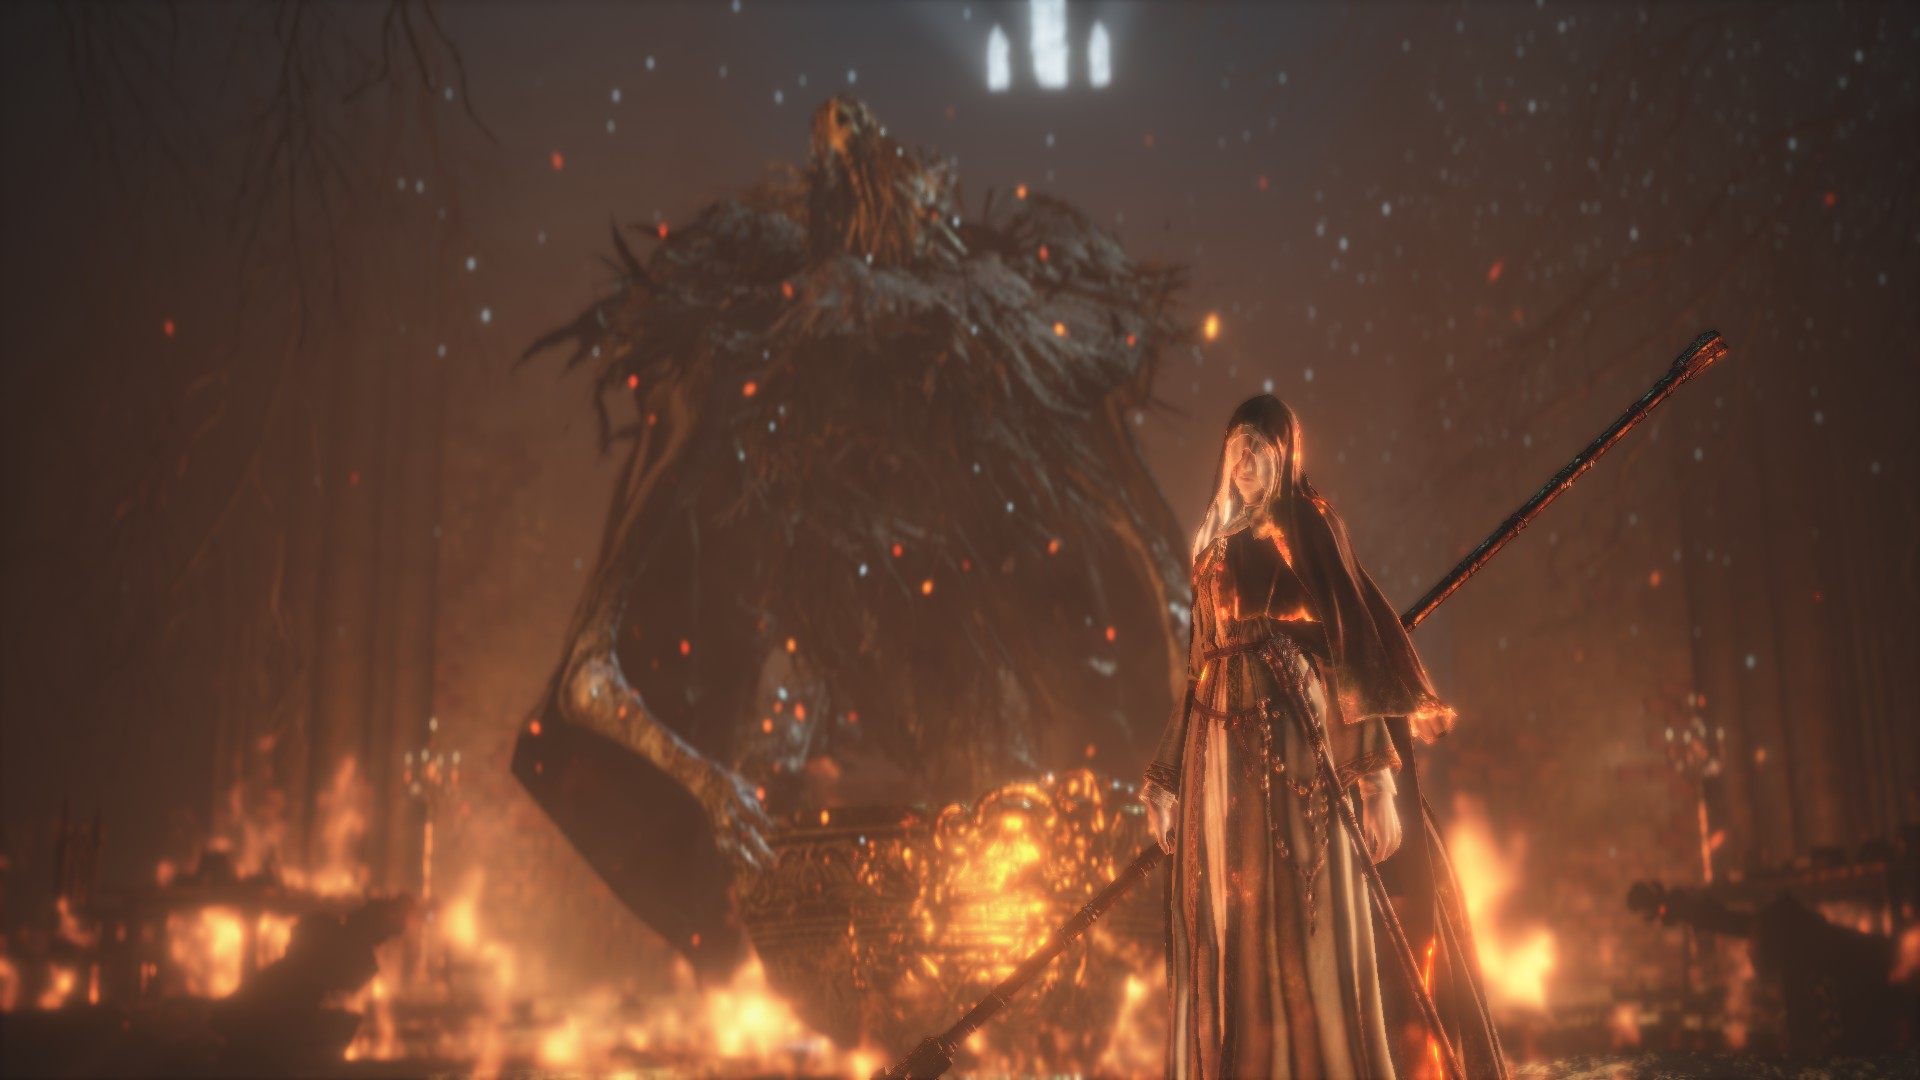 Dark Souls 3: Ashes of Ariandel - How to defeat Sister Friede